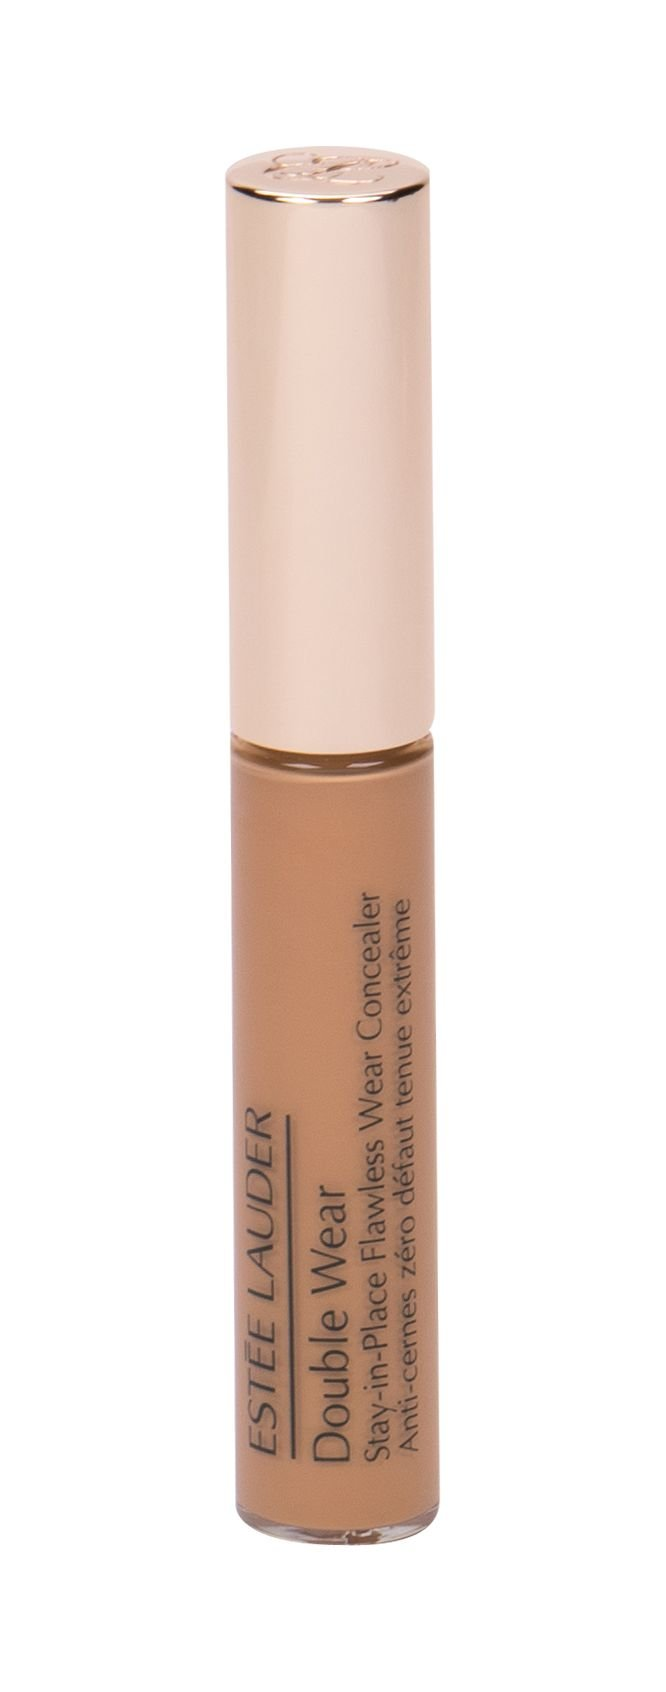 Estée Lauder Double Wear Corrector 7ml 4W Medium Deep (Warm)